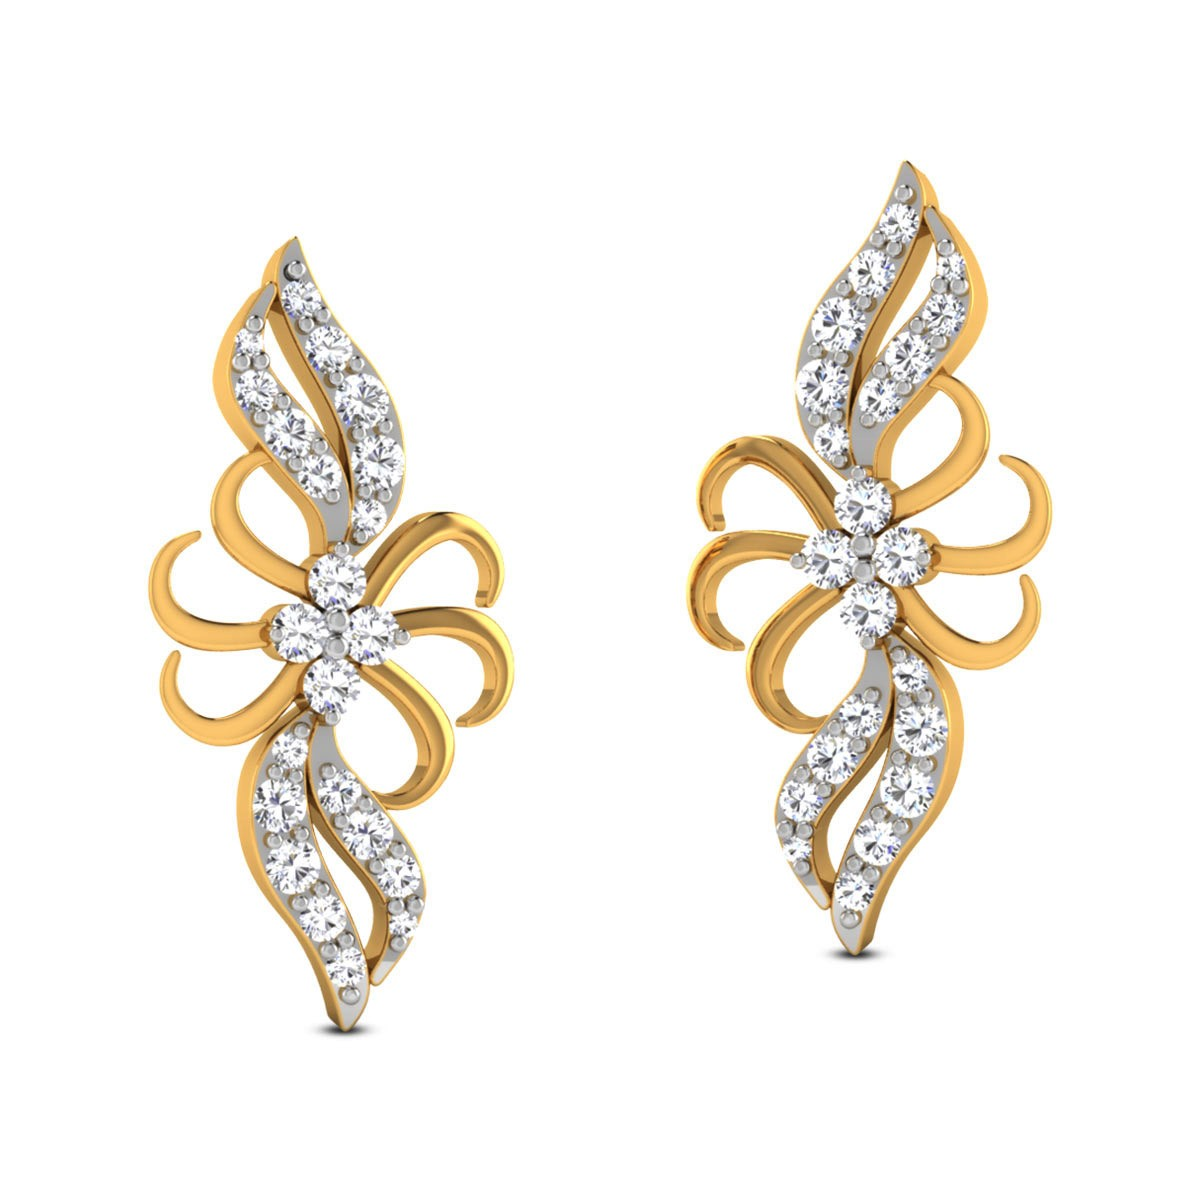 Emme Diamond Stud Earrings